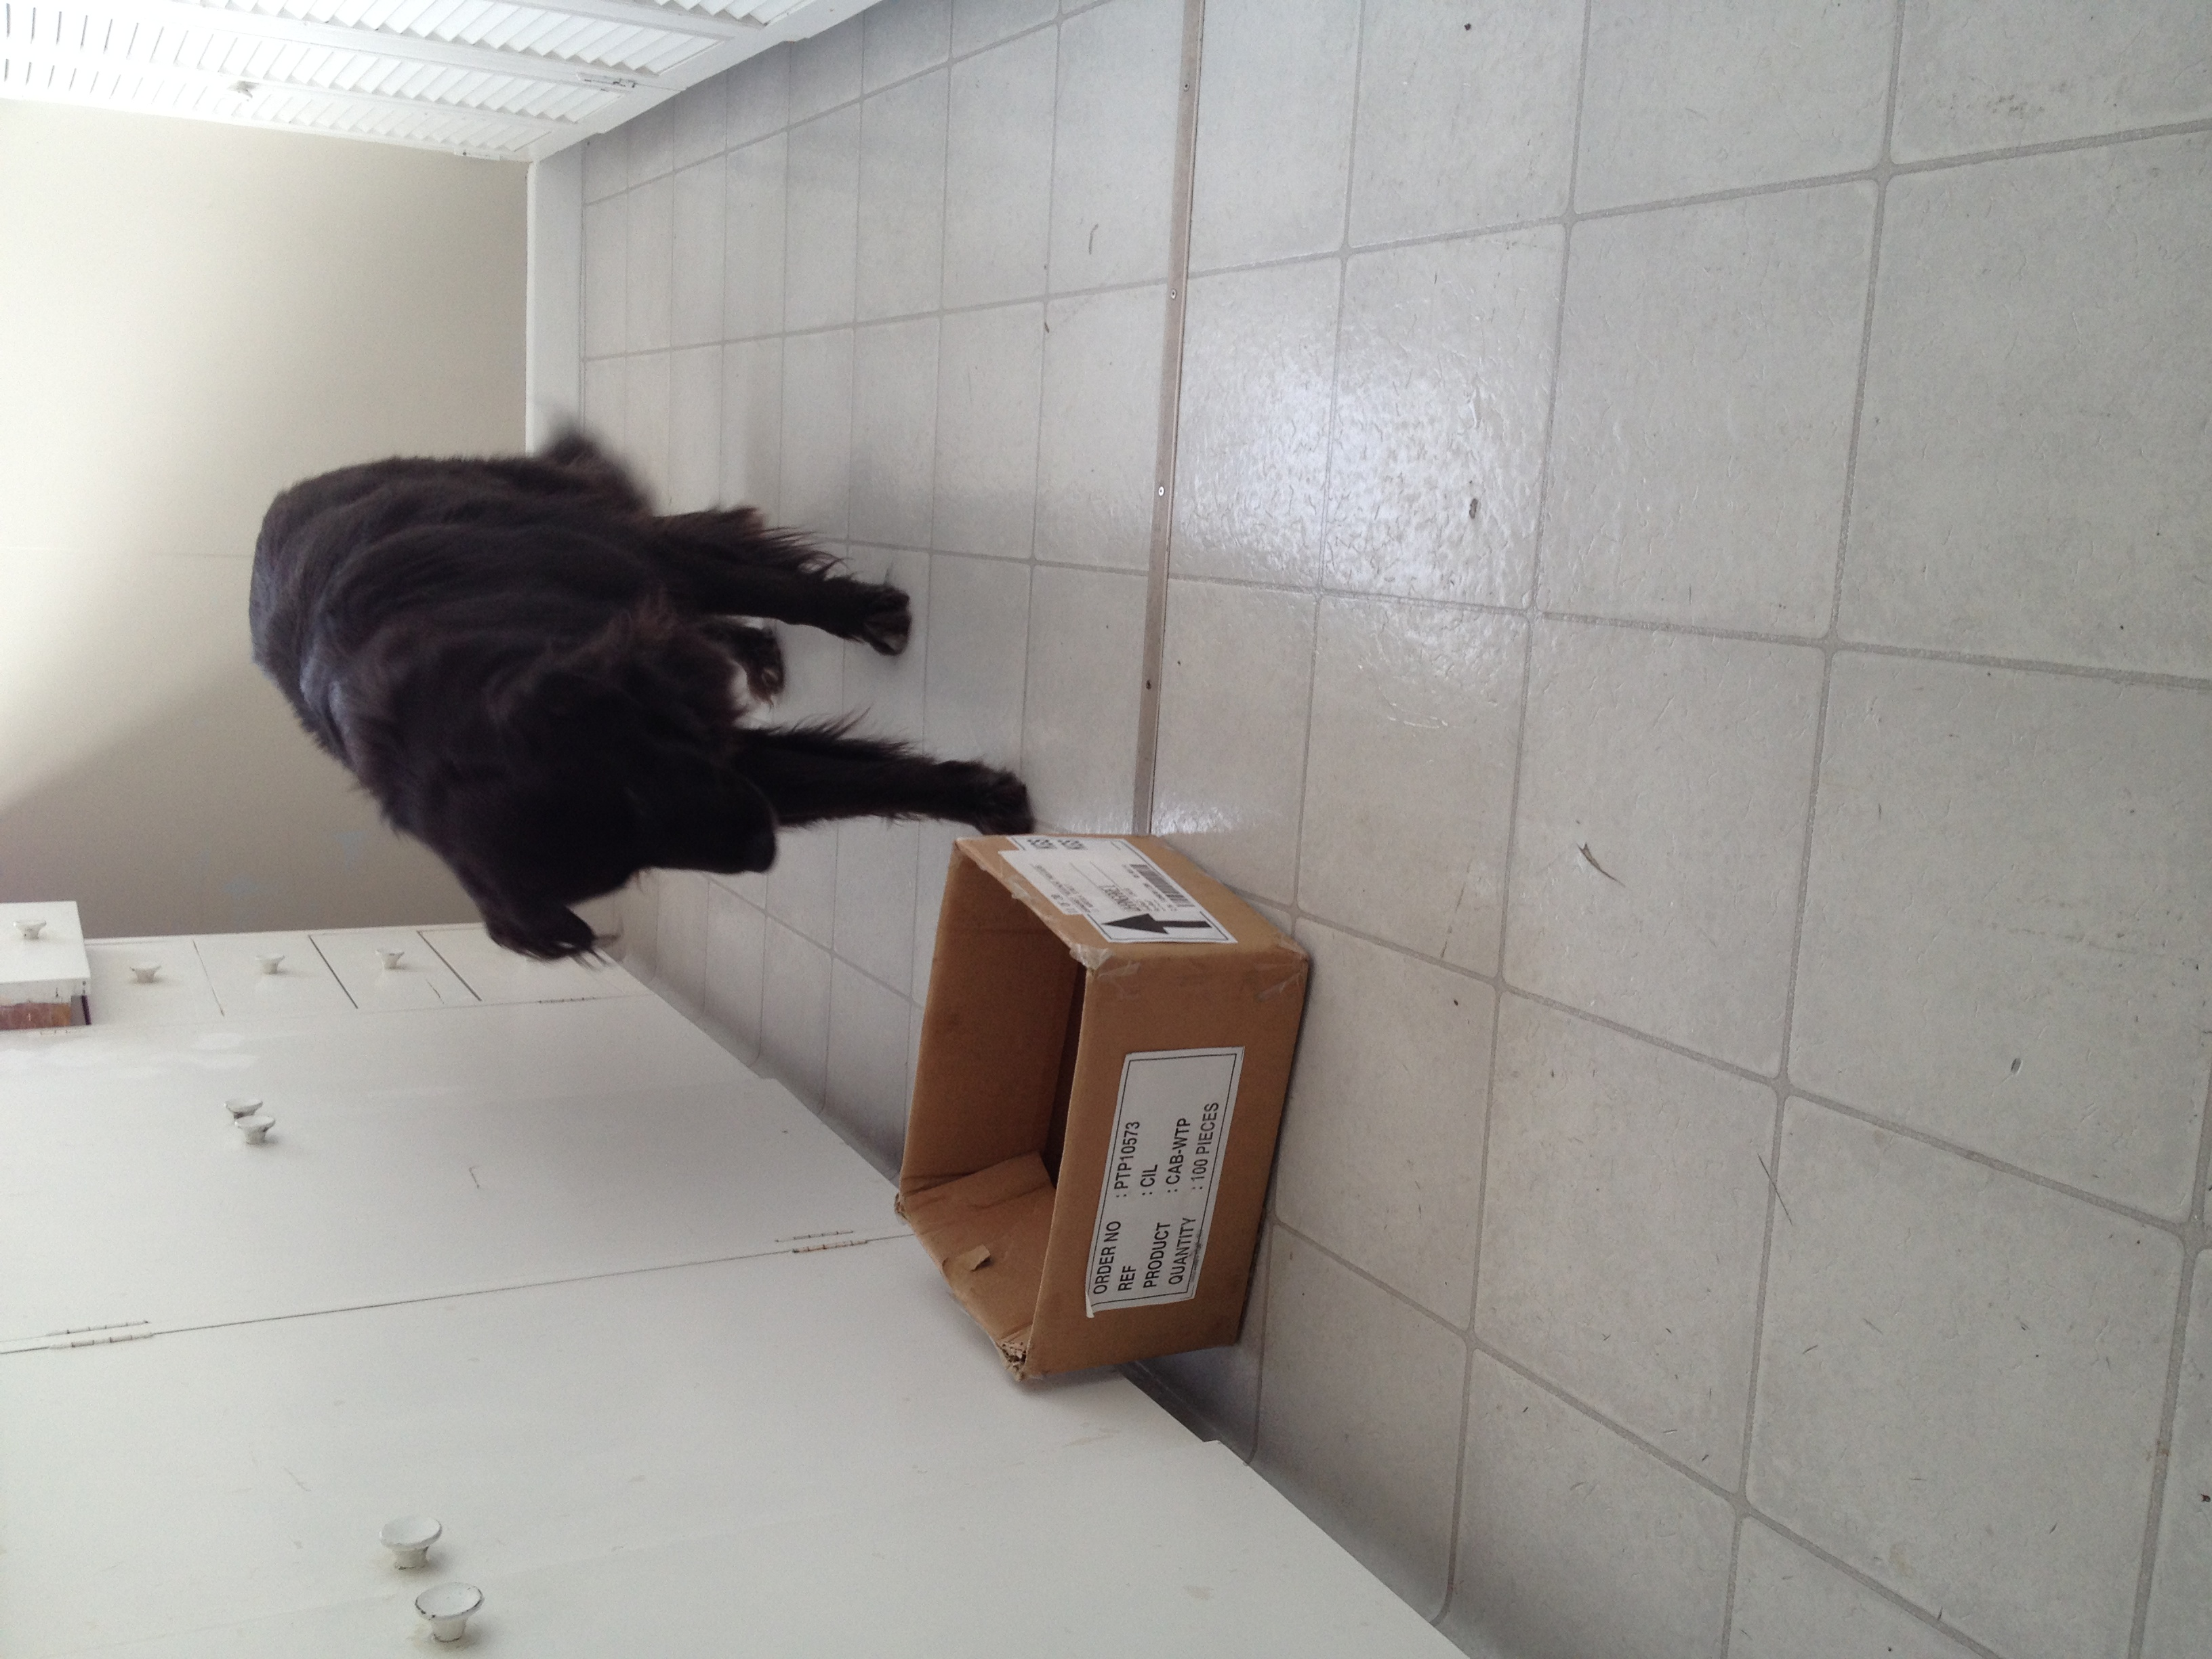 Here is Frankie during a search practice happy to walk on the slippery kitchen vinyl.